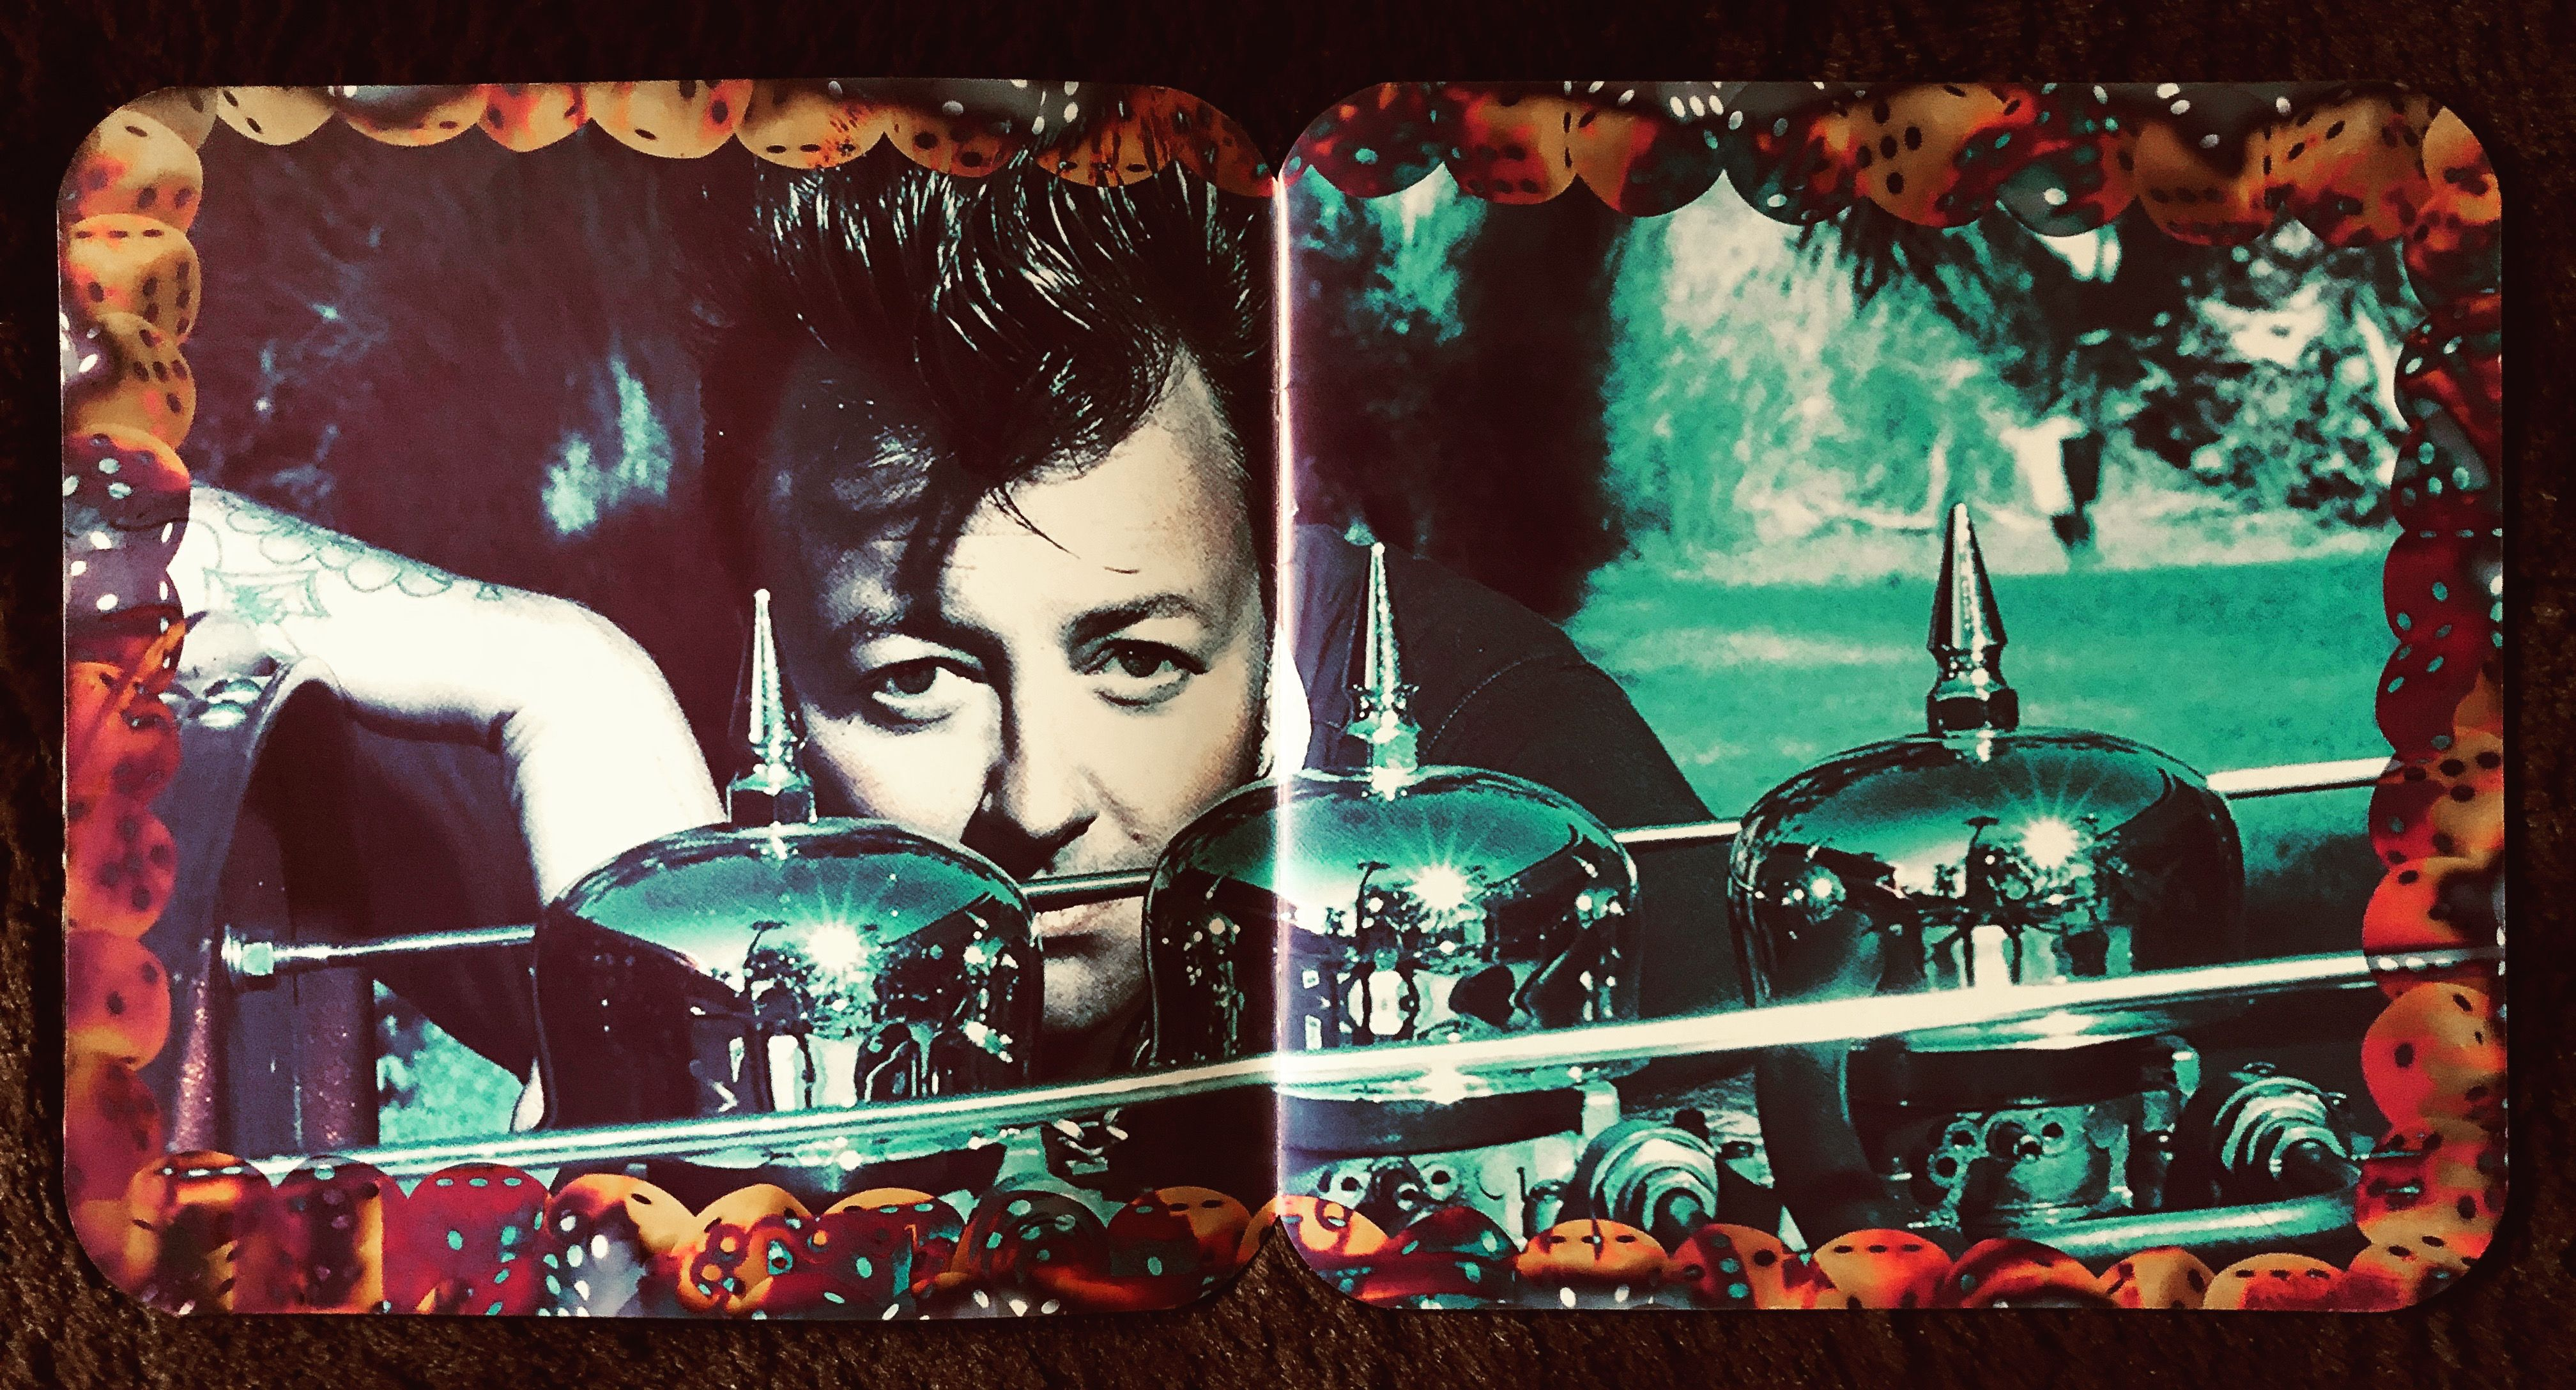 Pin by Diane Sell on Brian Setzer in the Media in 2020